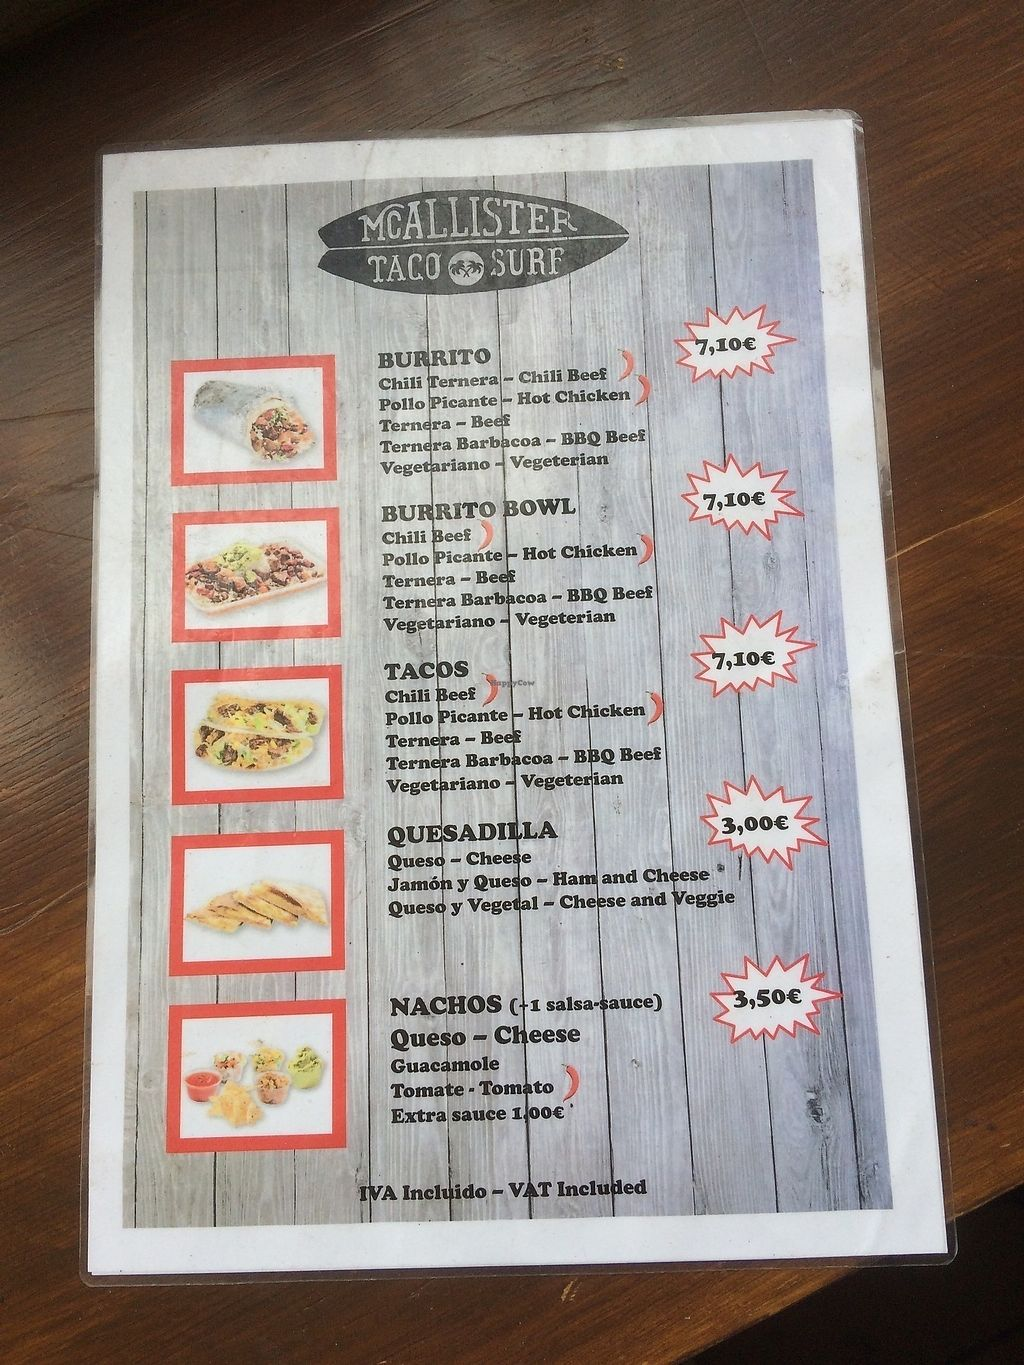 "Photo of McAllister Taco Surf Bar  by <a href=""/members/profile/DominicTinner"">DominicTinner</a> <br/>Menu <br/> July 18, 2017  - <a href='/contact/abuse/image/96139/281805'>Report</a>"